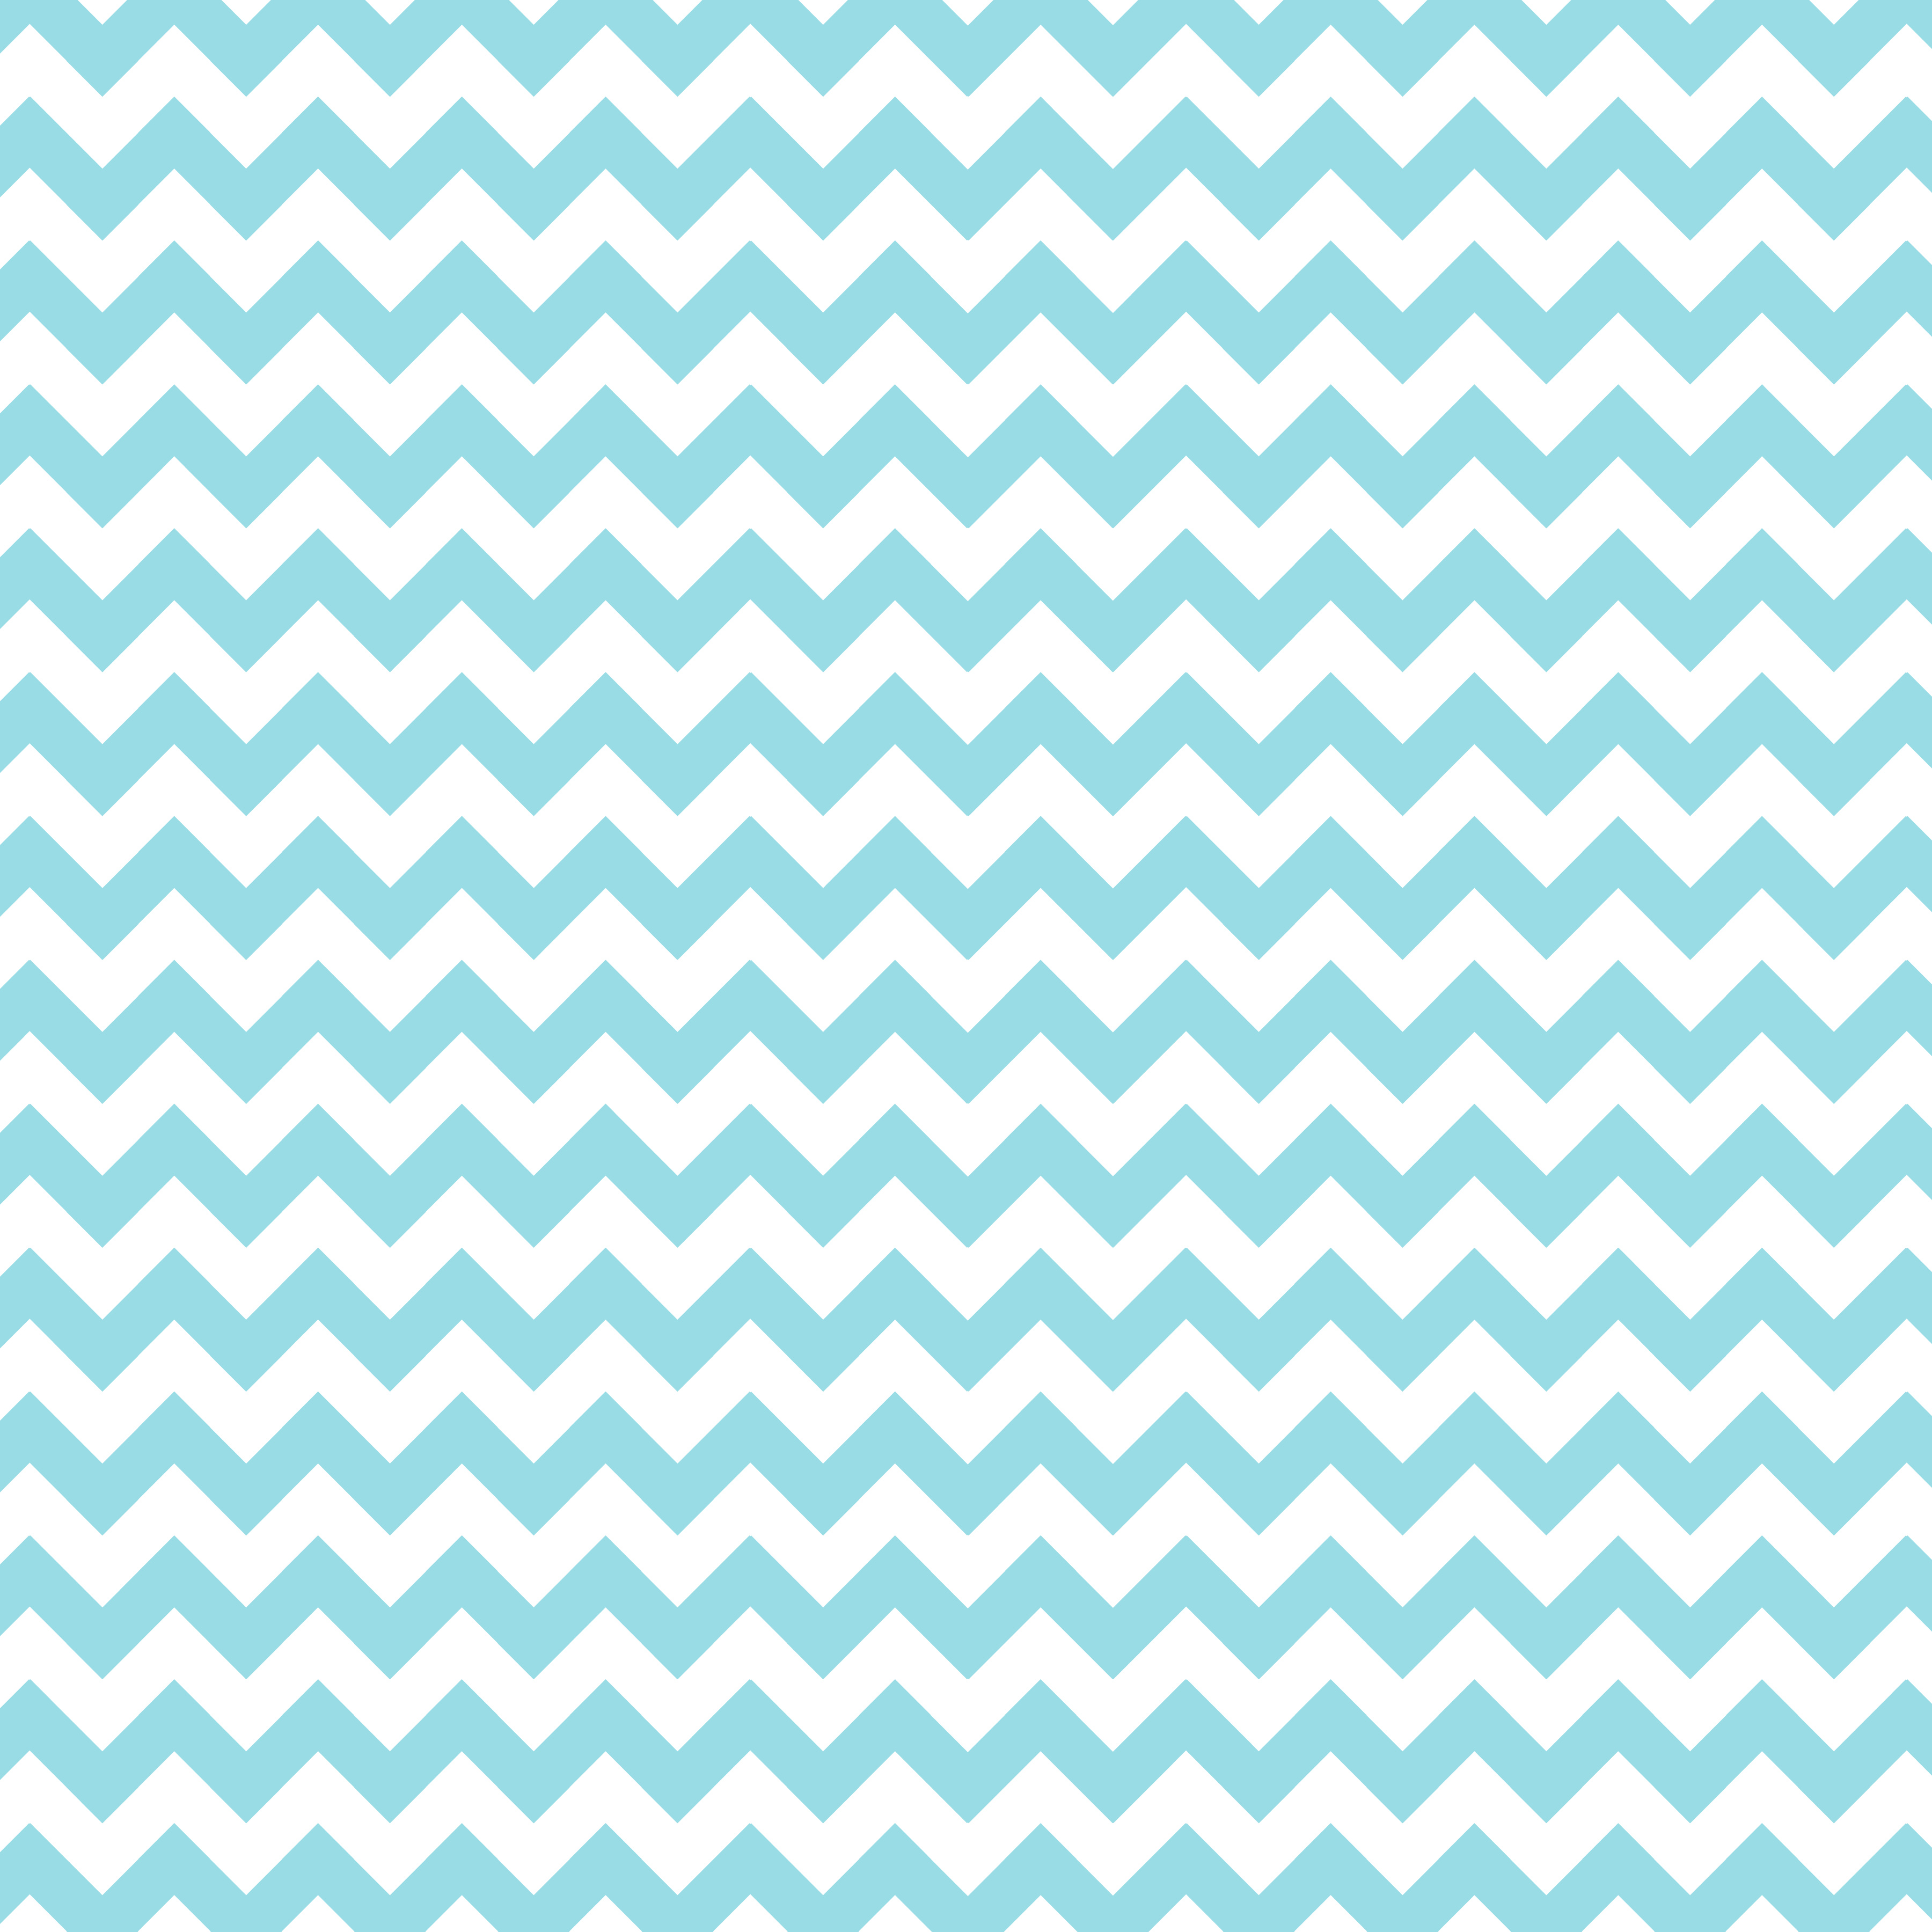 blue and white chevron